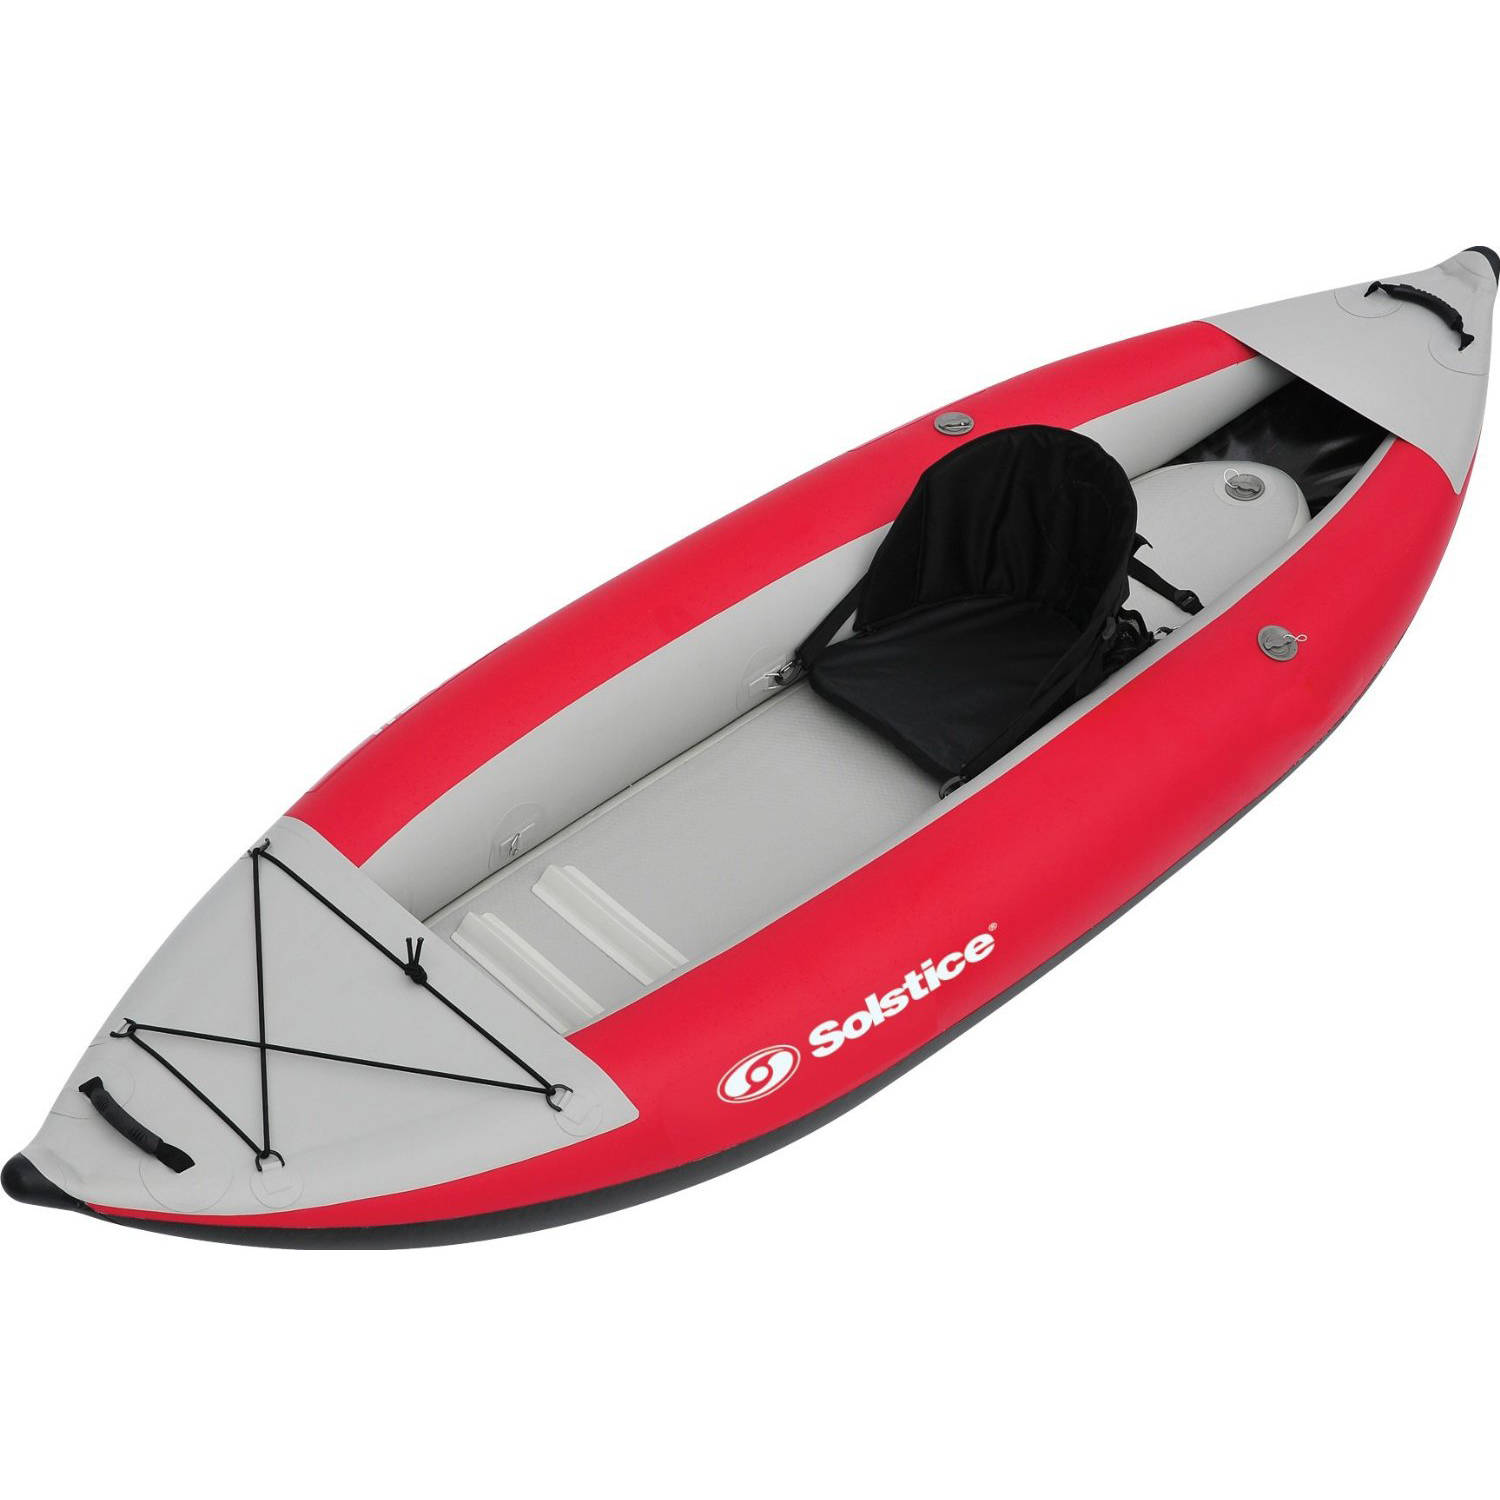 Solstice Flare 1-Person Kayak by International Leisure